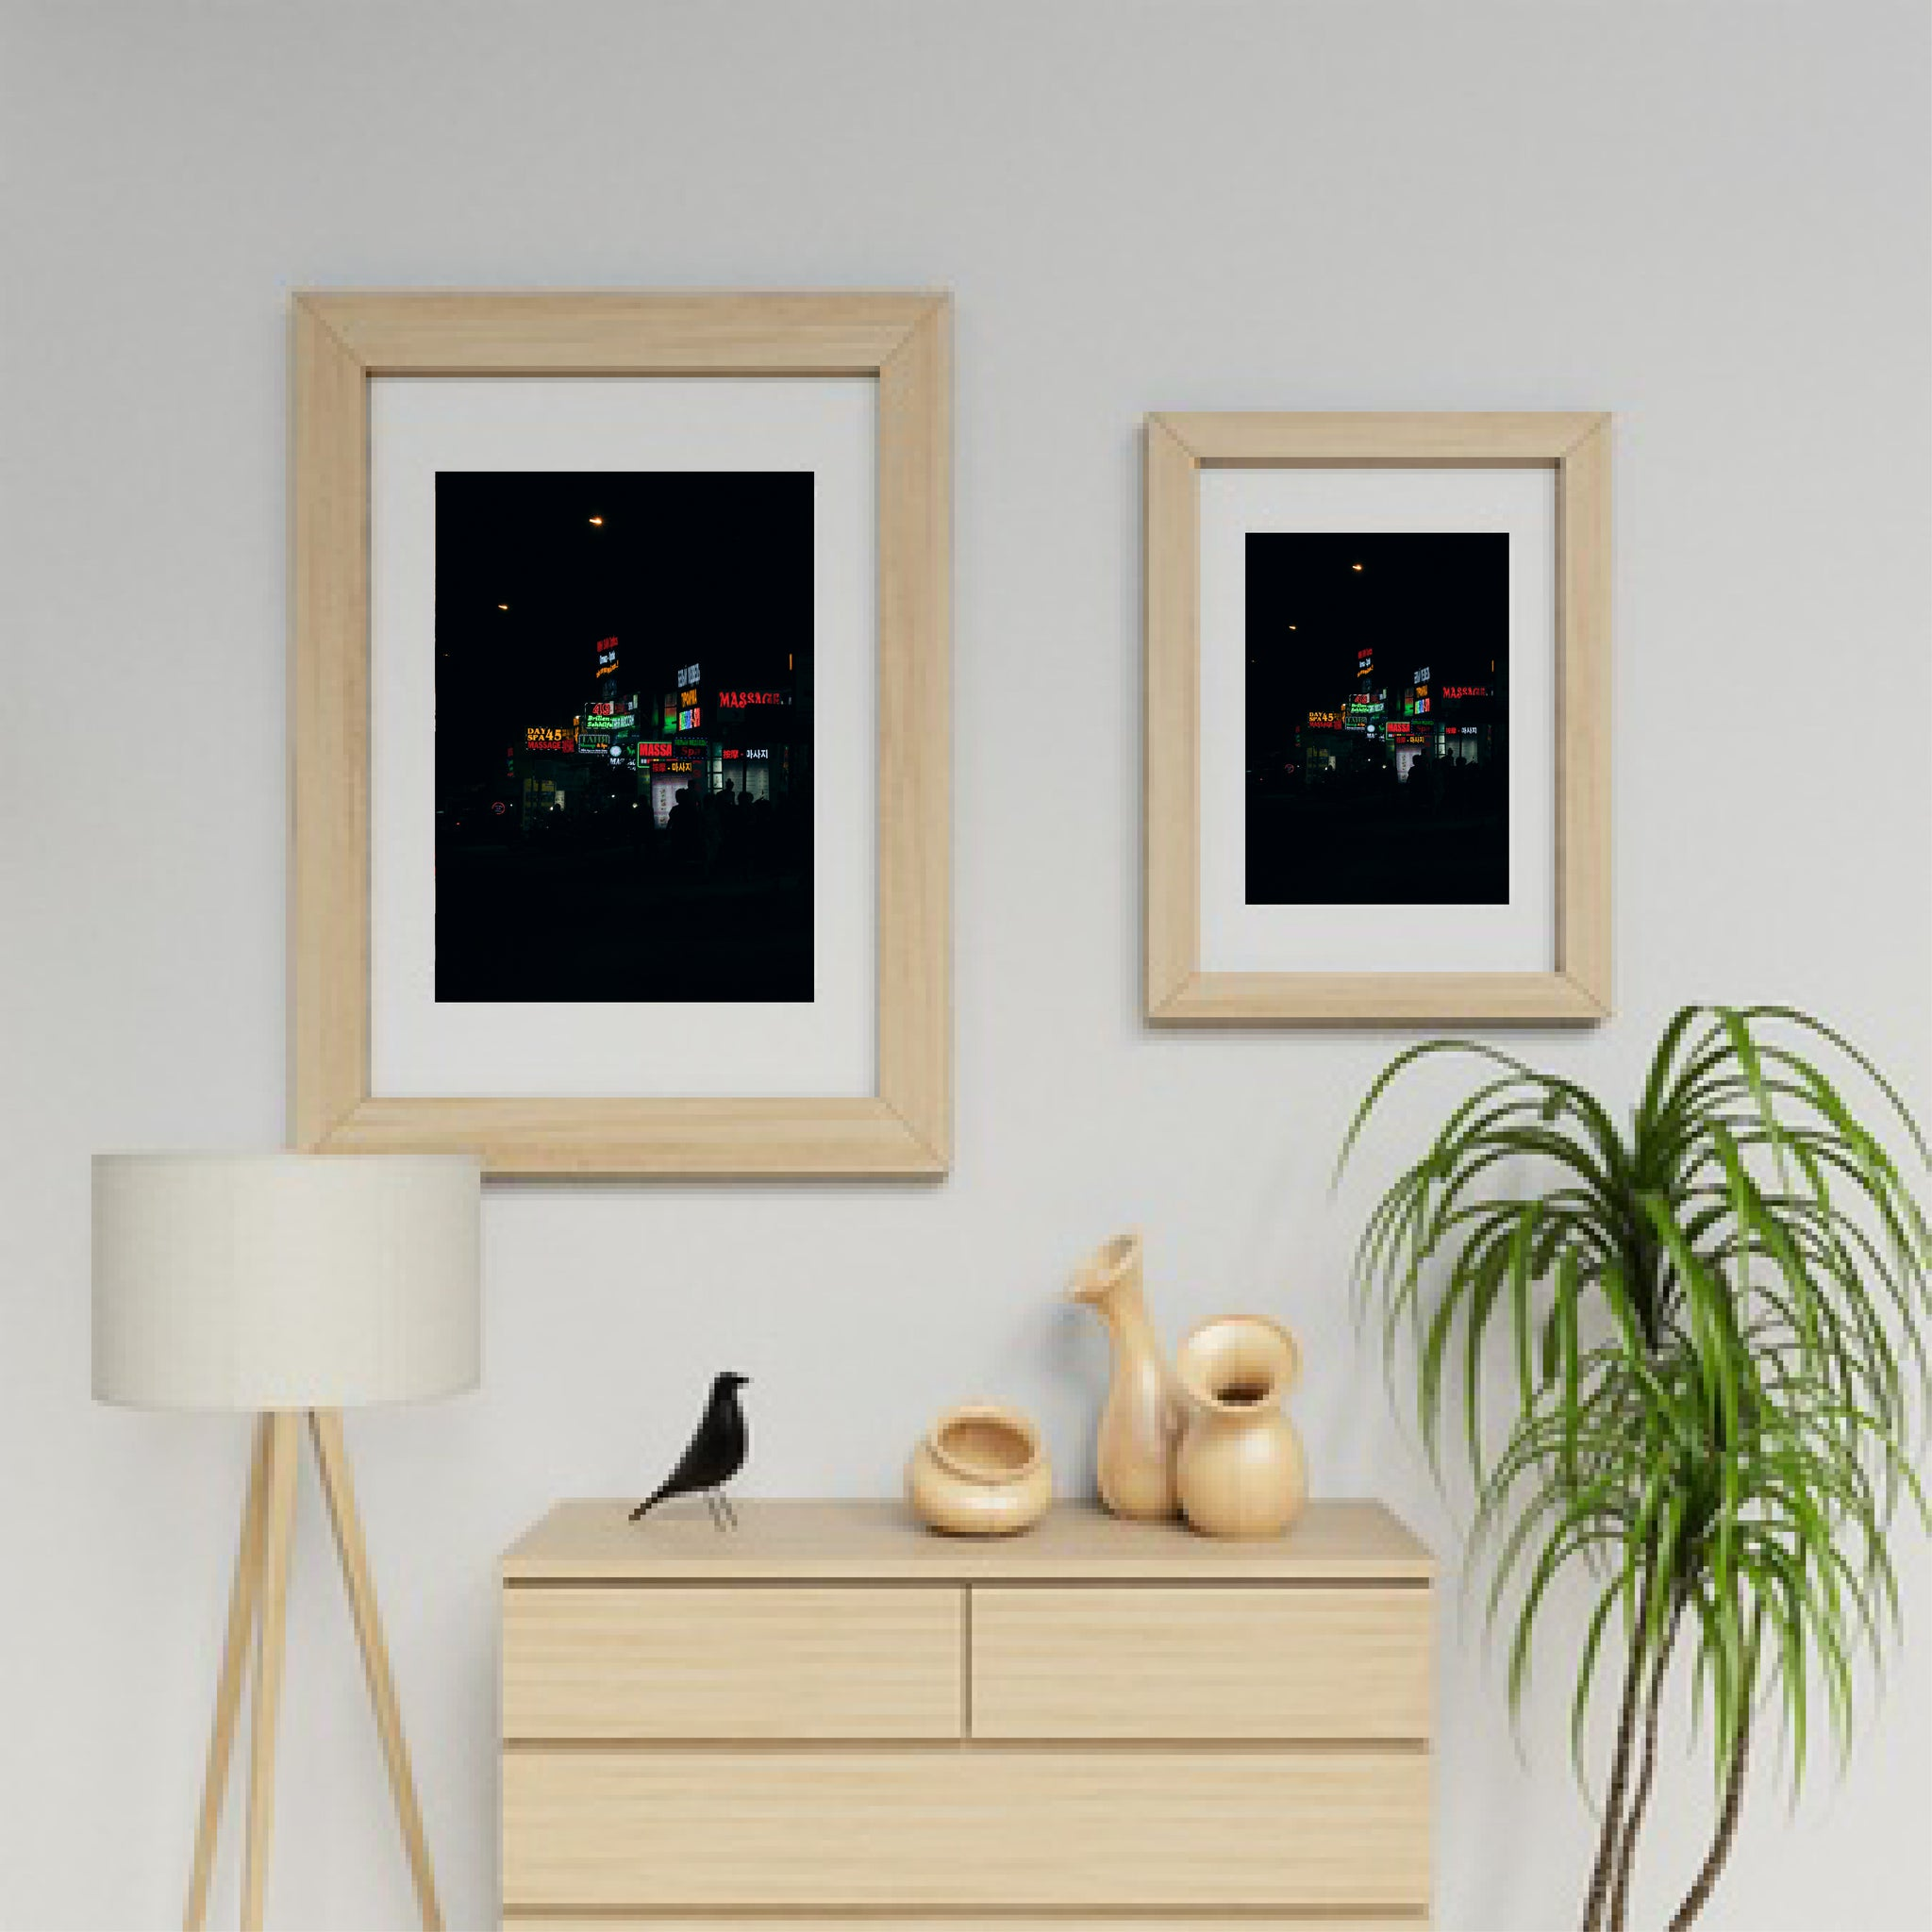 art prints on a wall